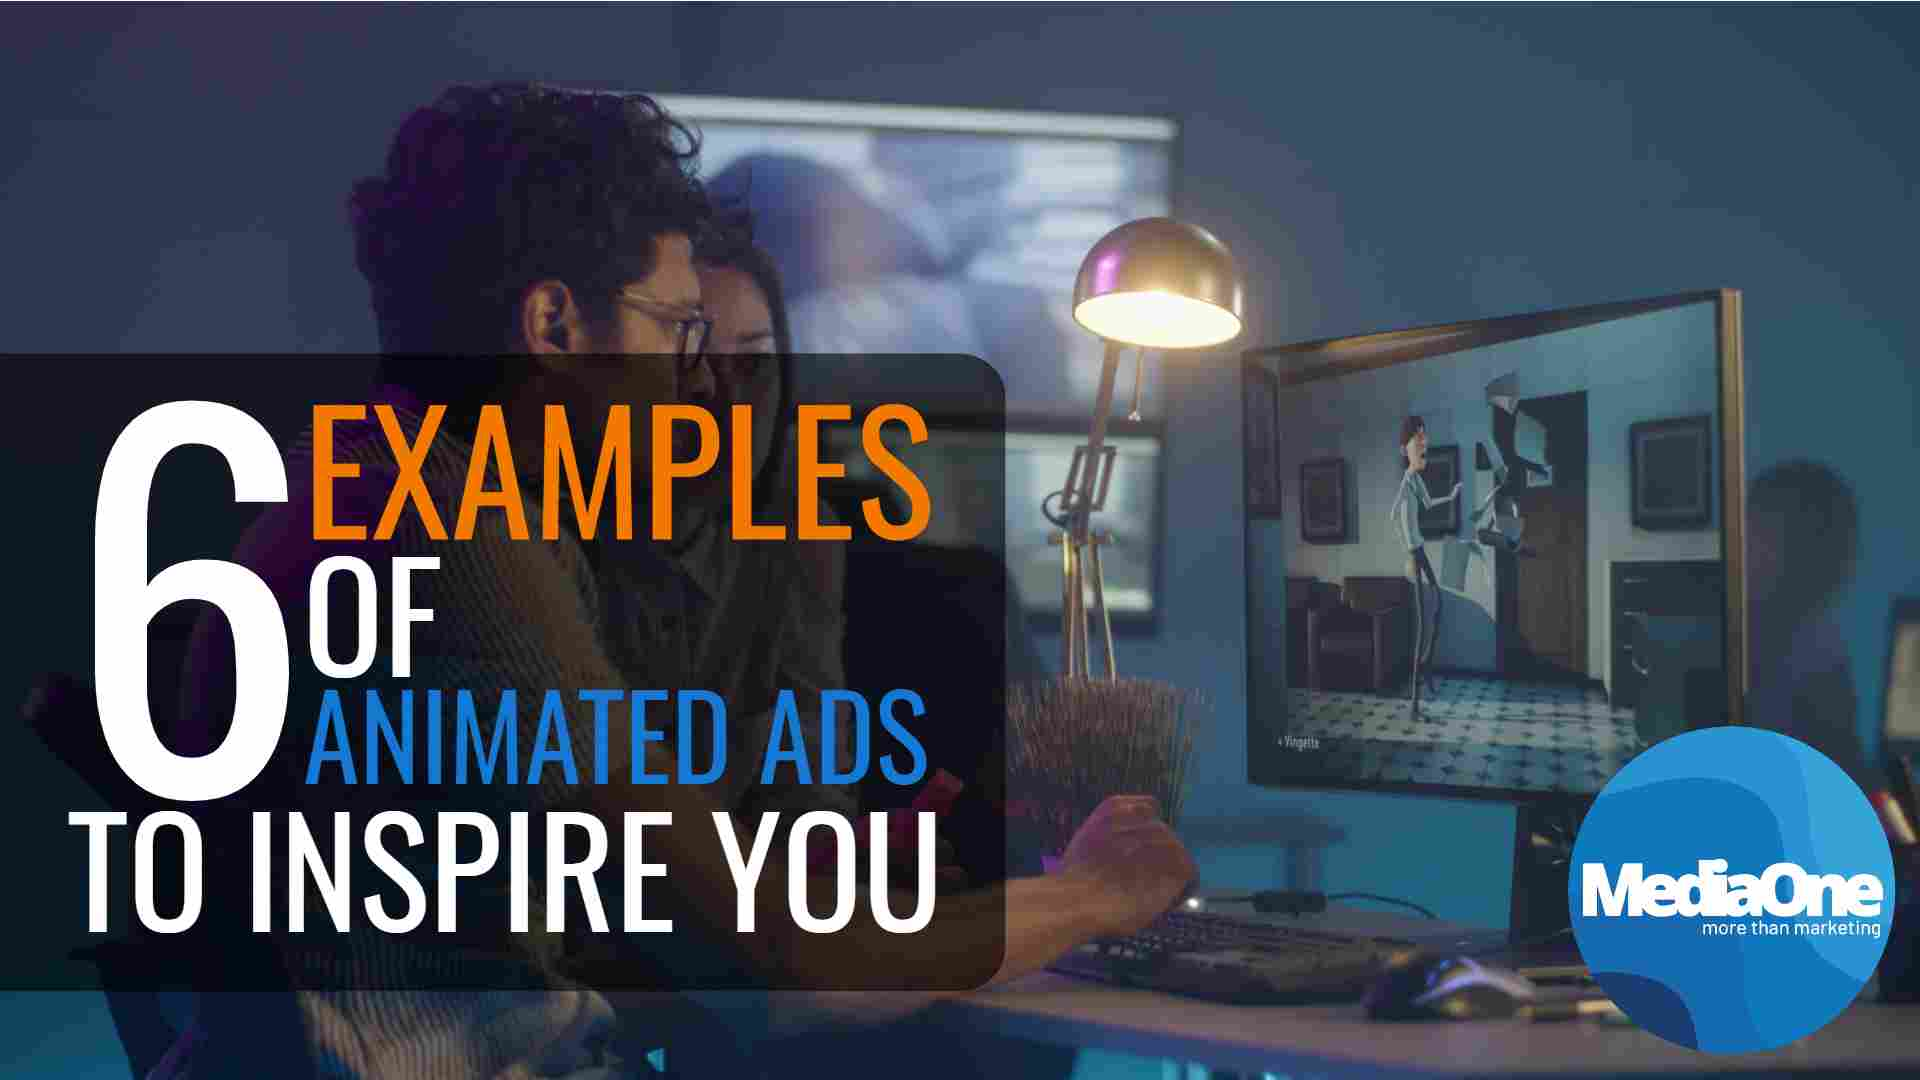 6-excellent-examples-of-animated-ads-to-inspire-you-in-2021